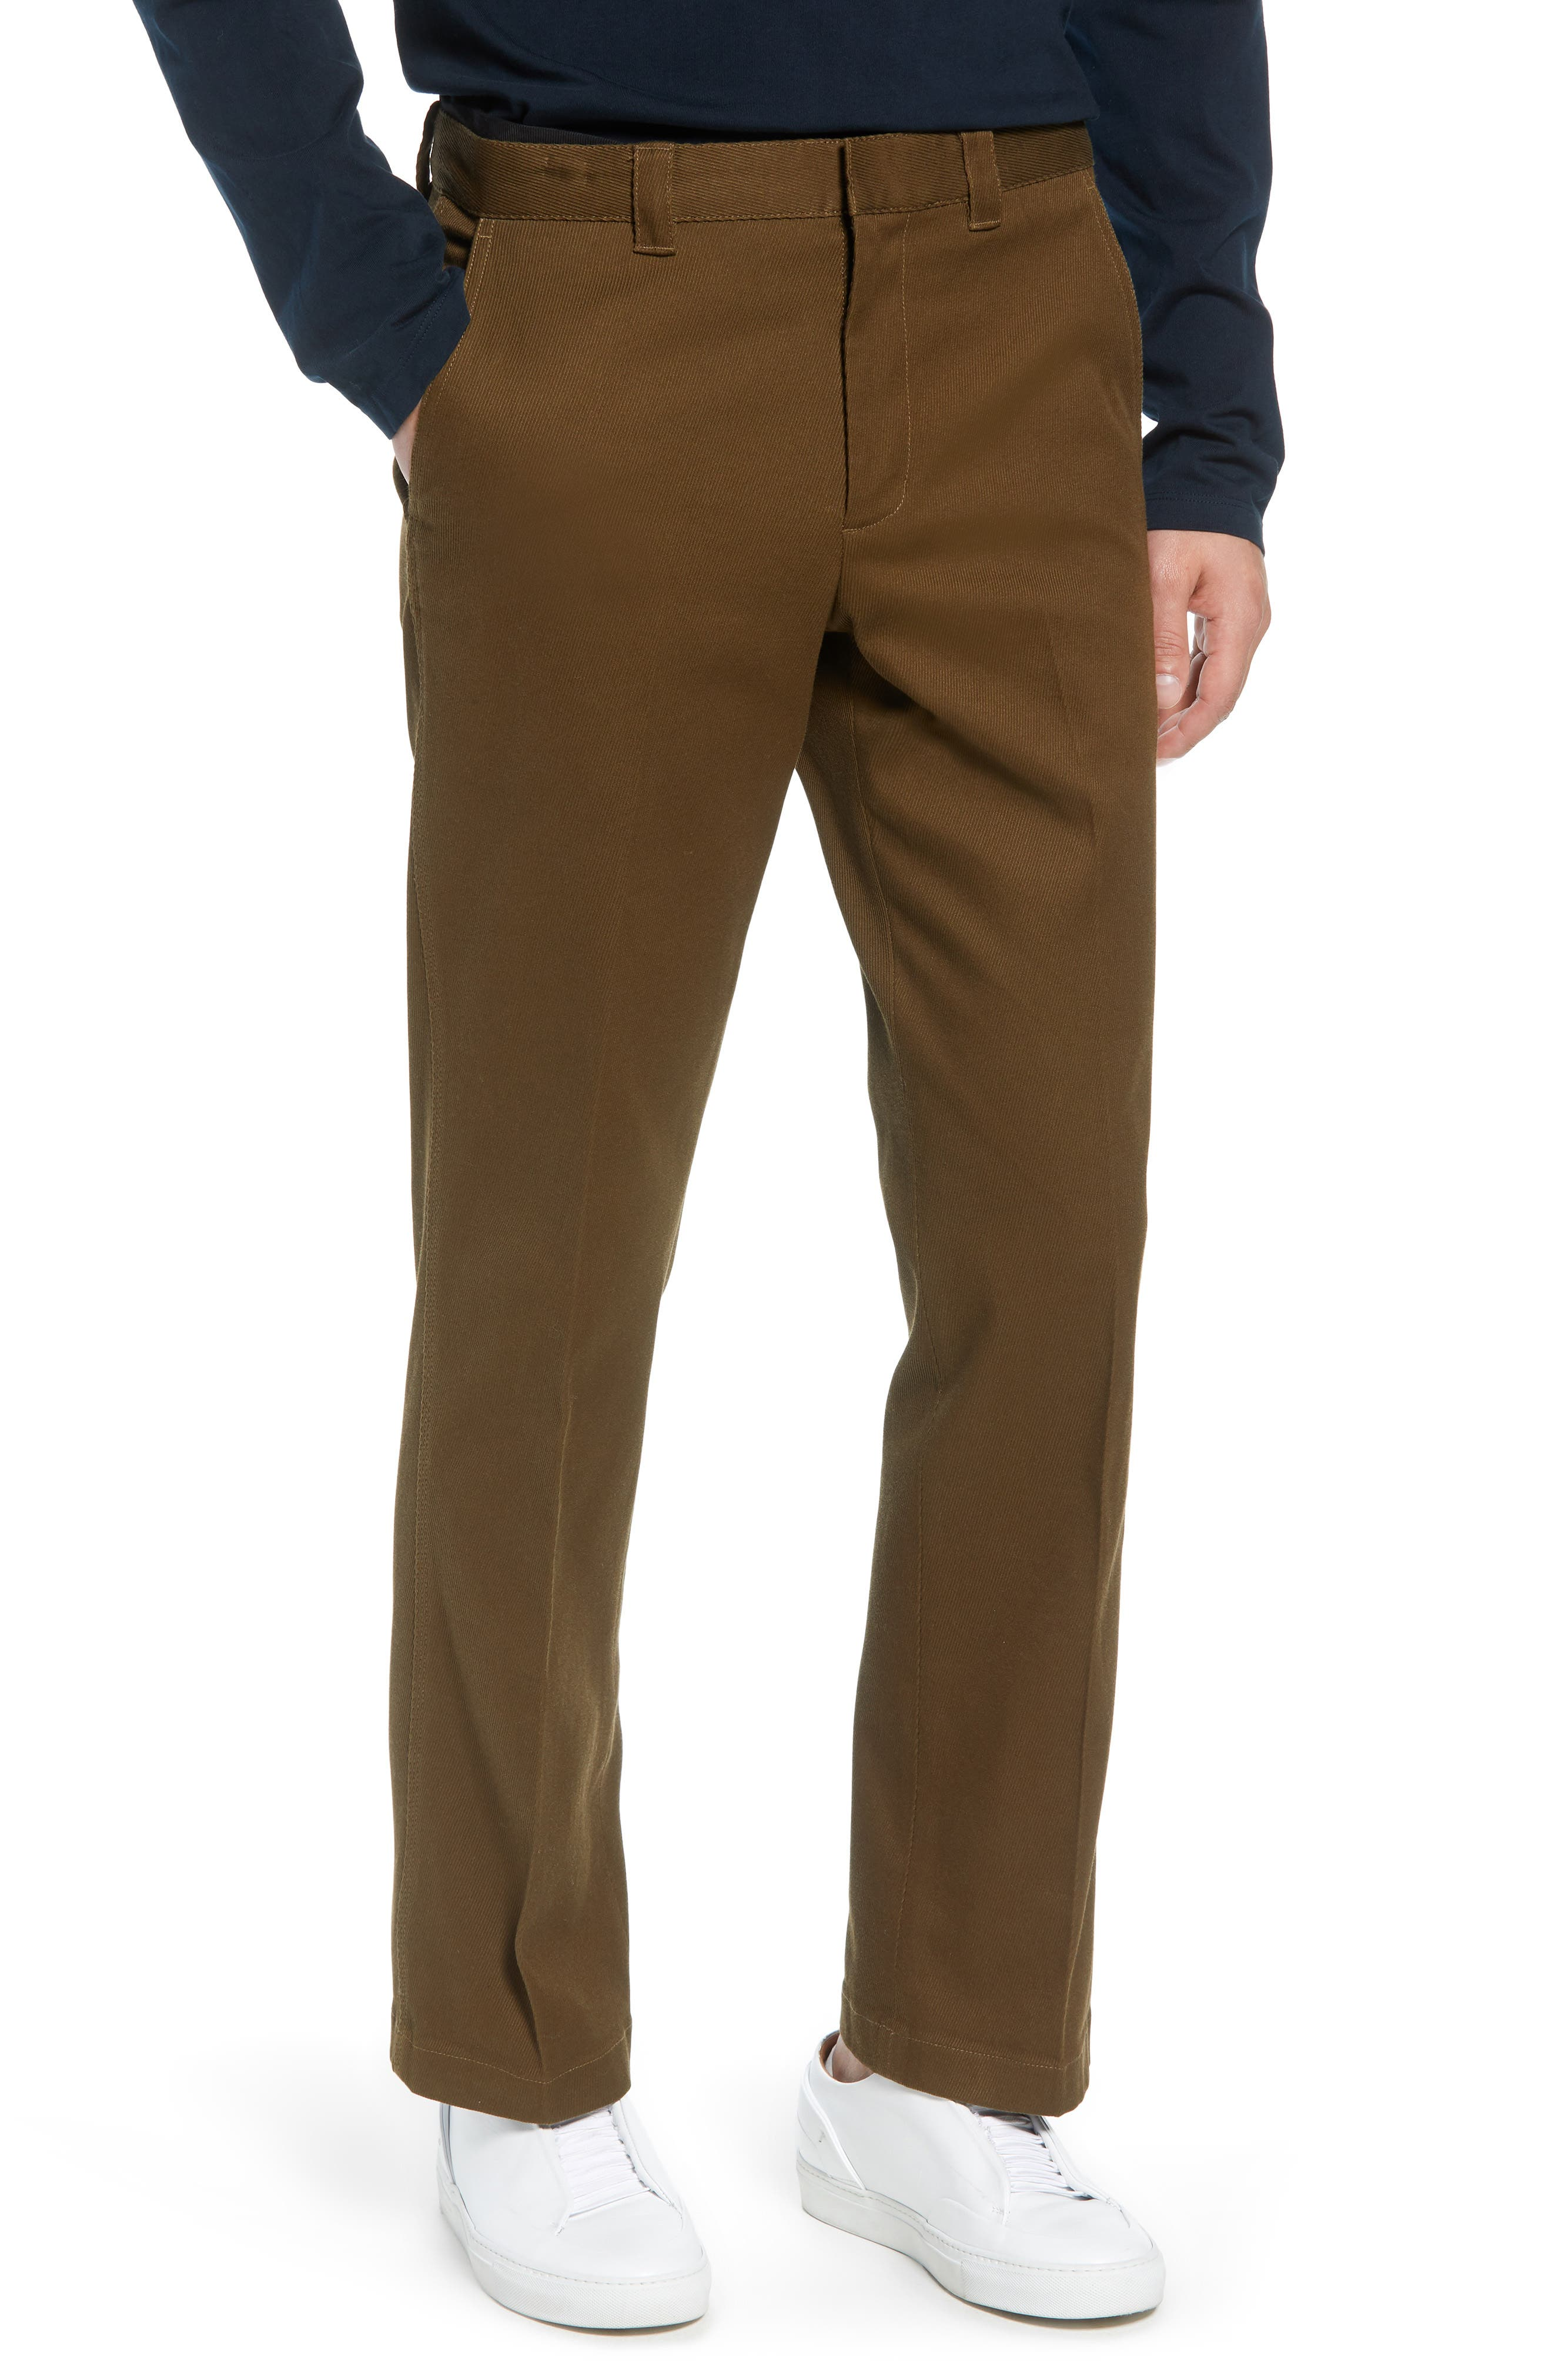 Stay Pressed Classic Fit Pants,                             Main thumbnail 1, color,                             INFANTRY GREEN